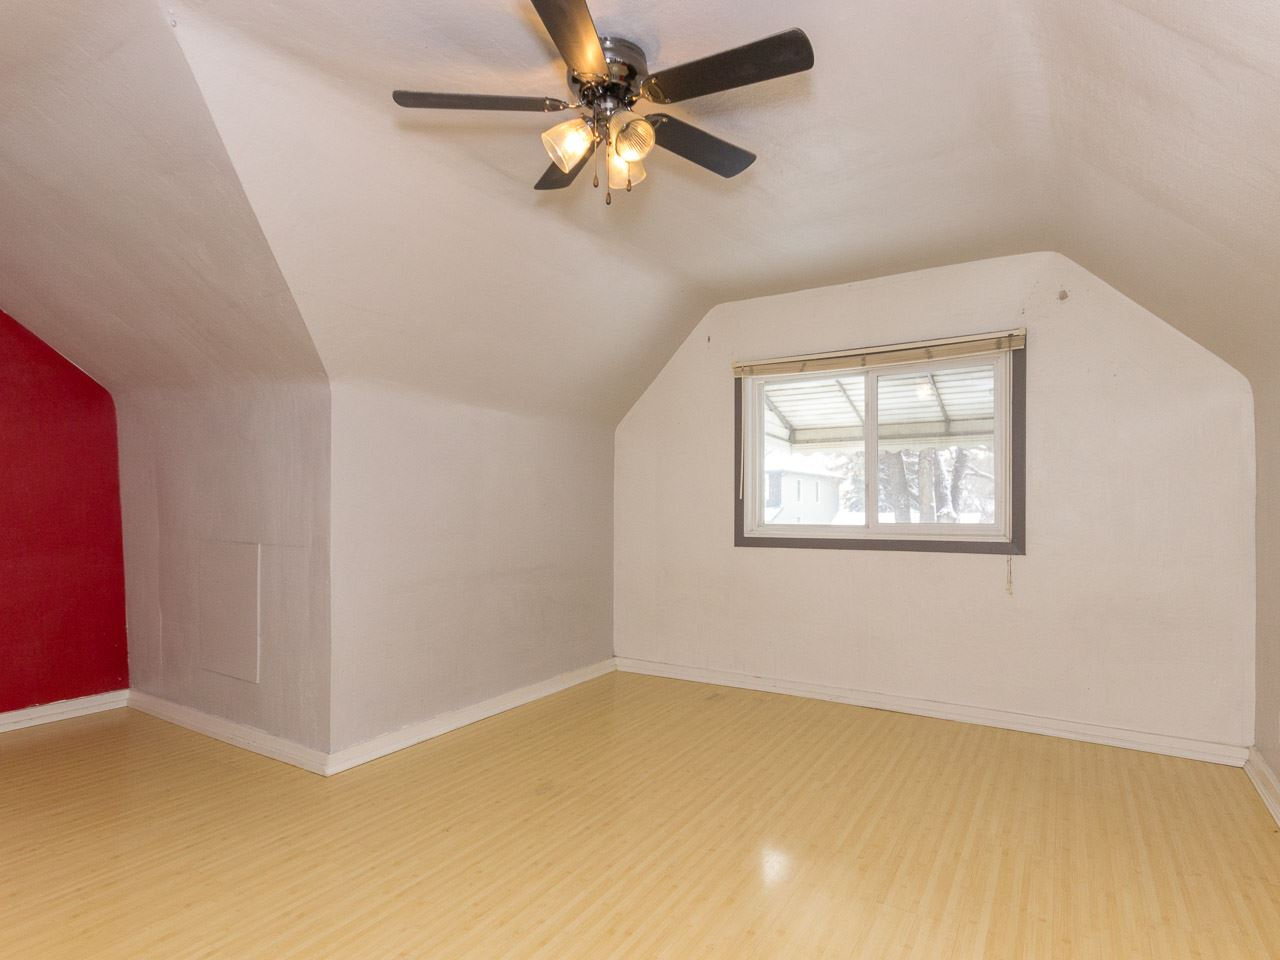 Photo 13: 12139 64 Street in Edmonton: Zone 06 House for sale : MLS® # E4077626